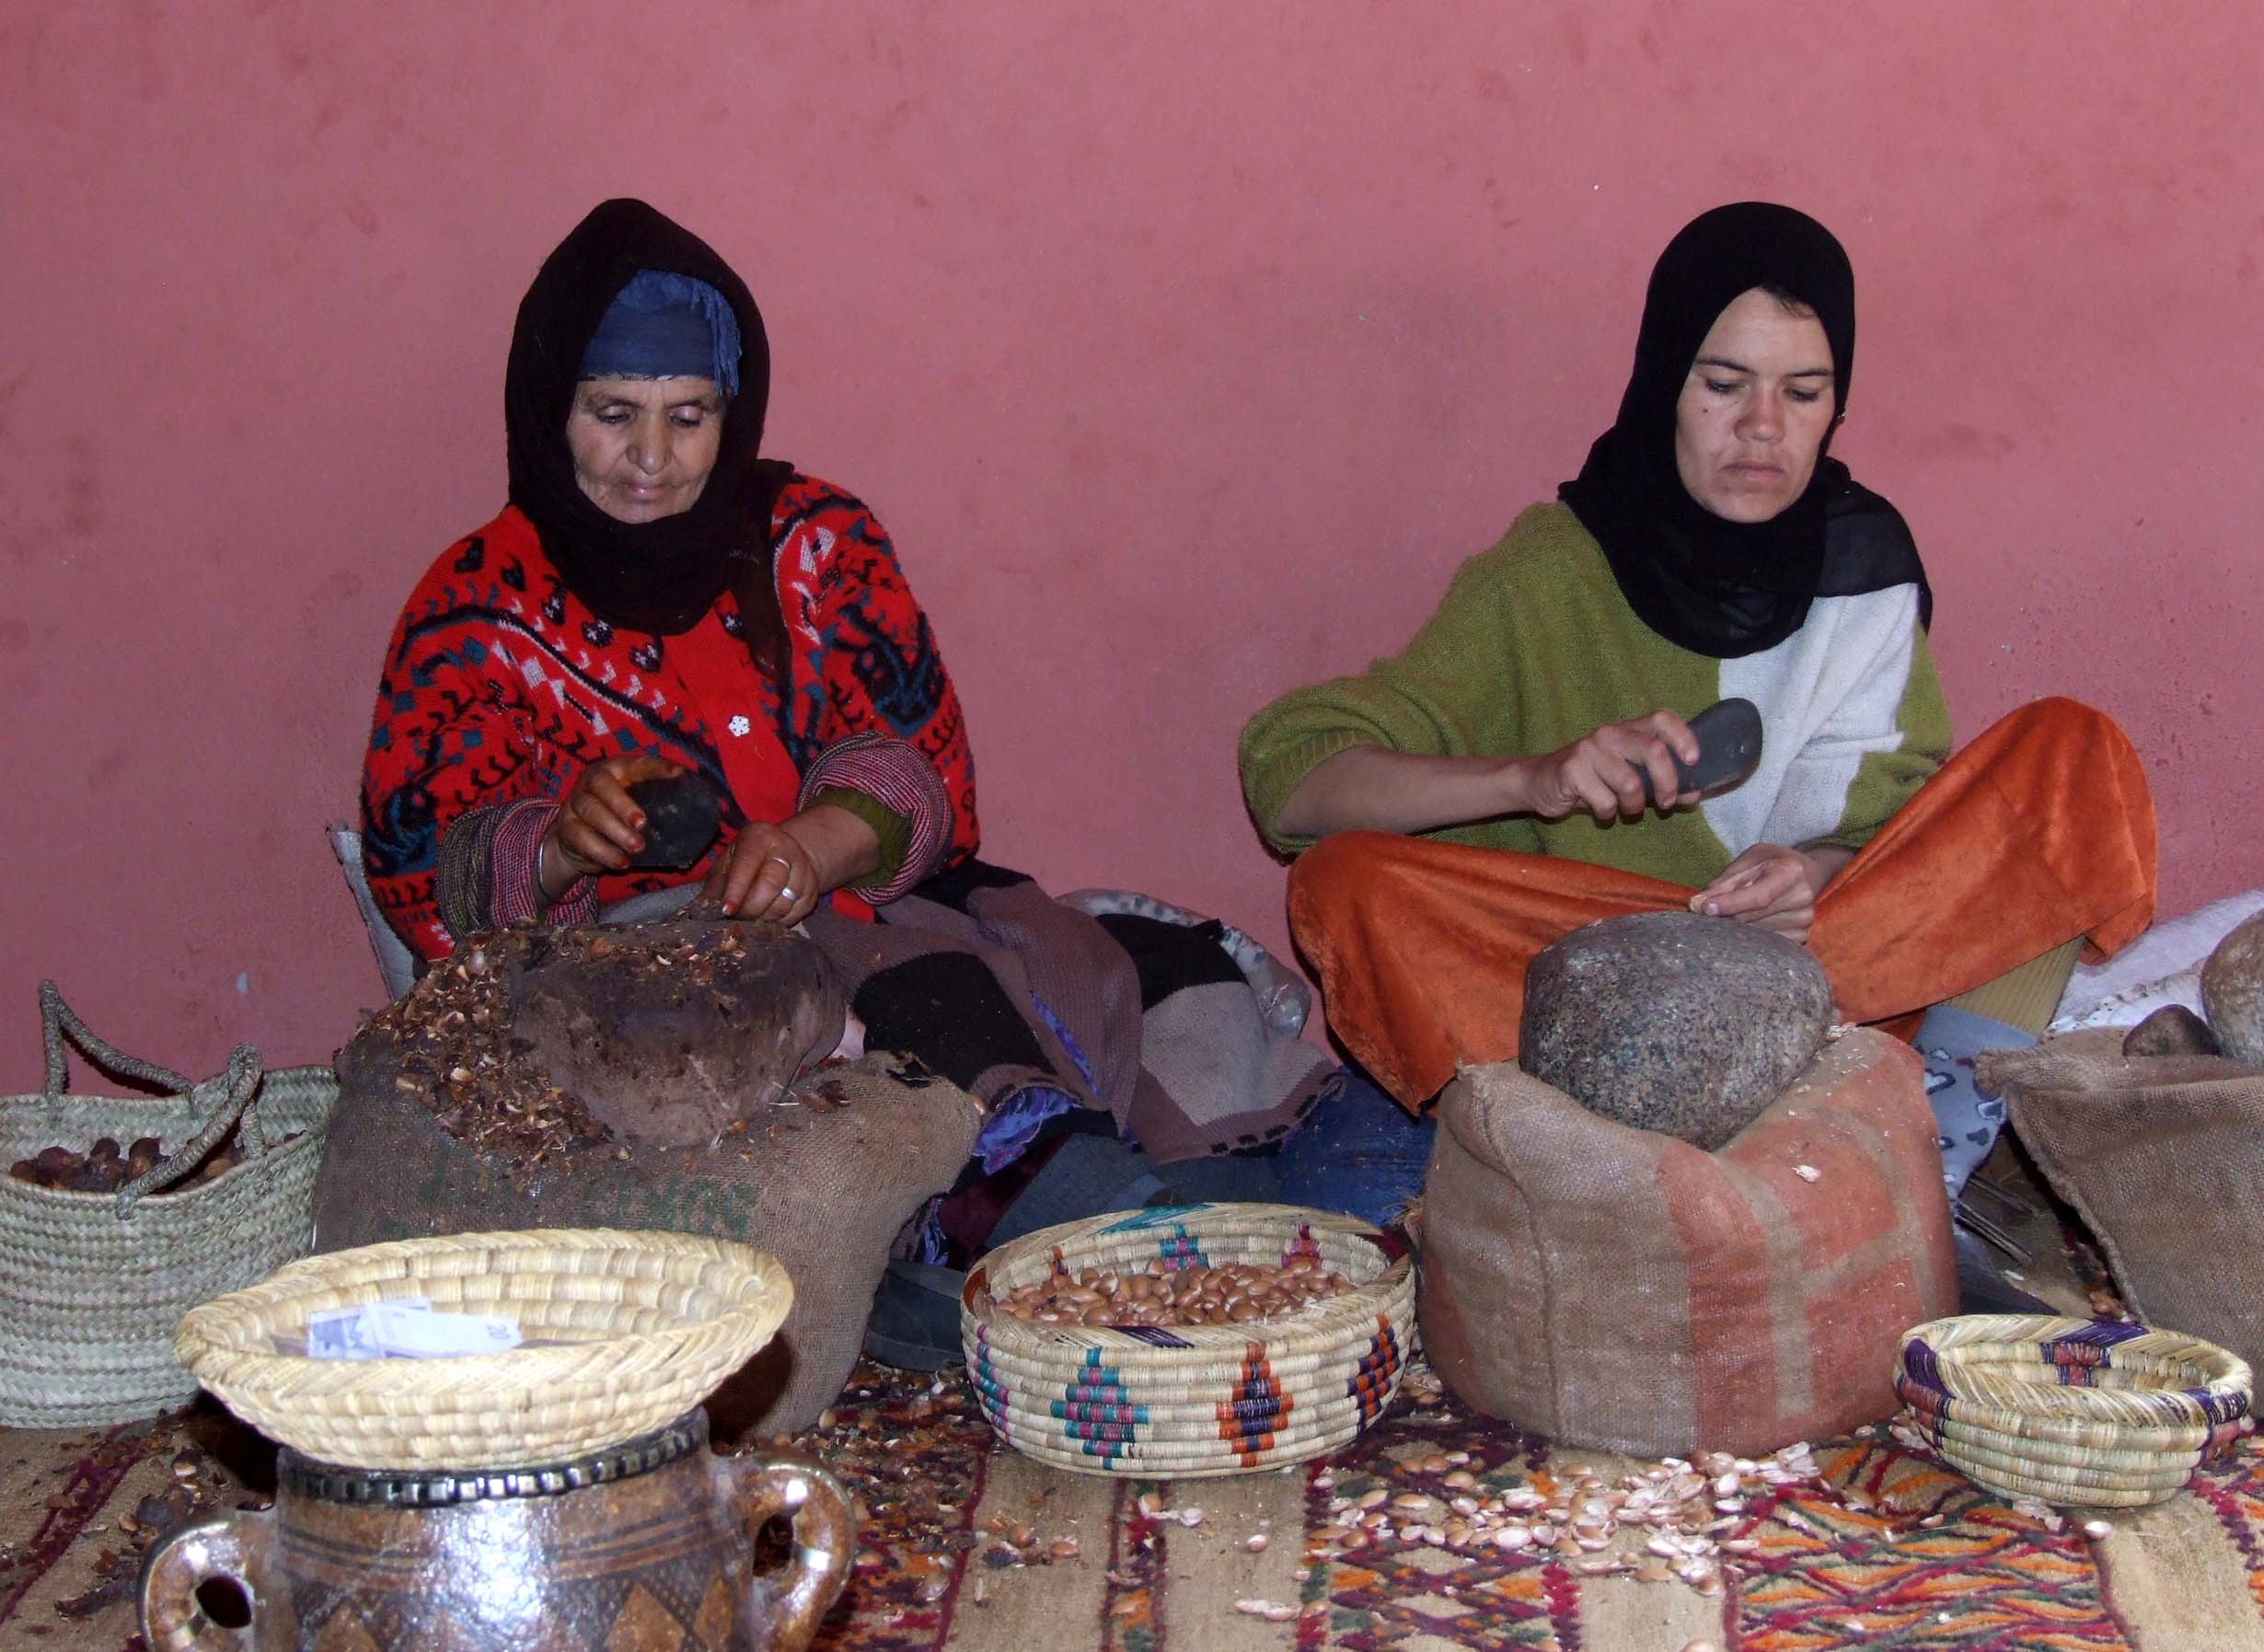 Two women seated and pounding nuts with stones